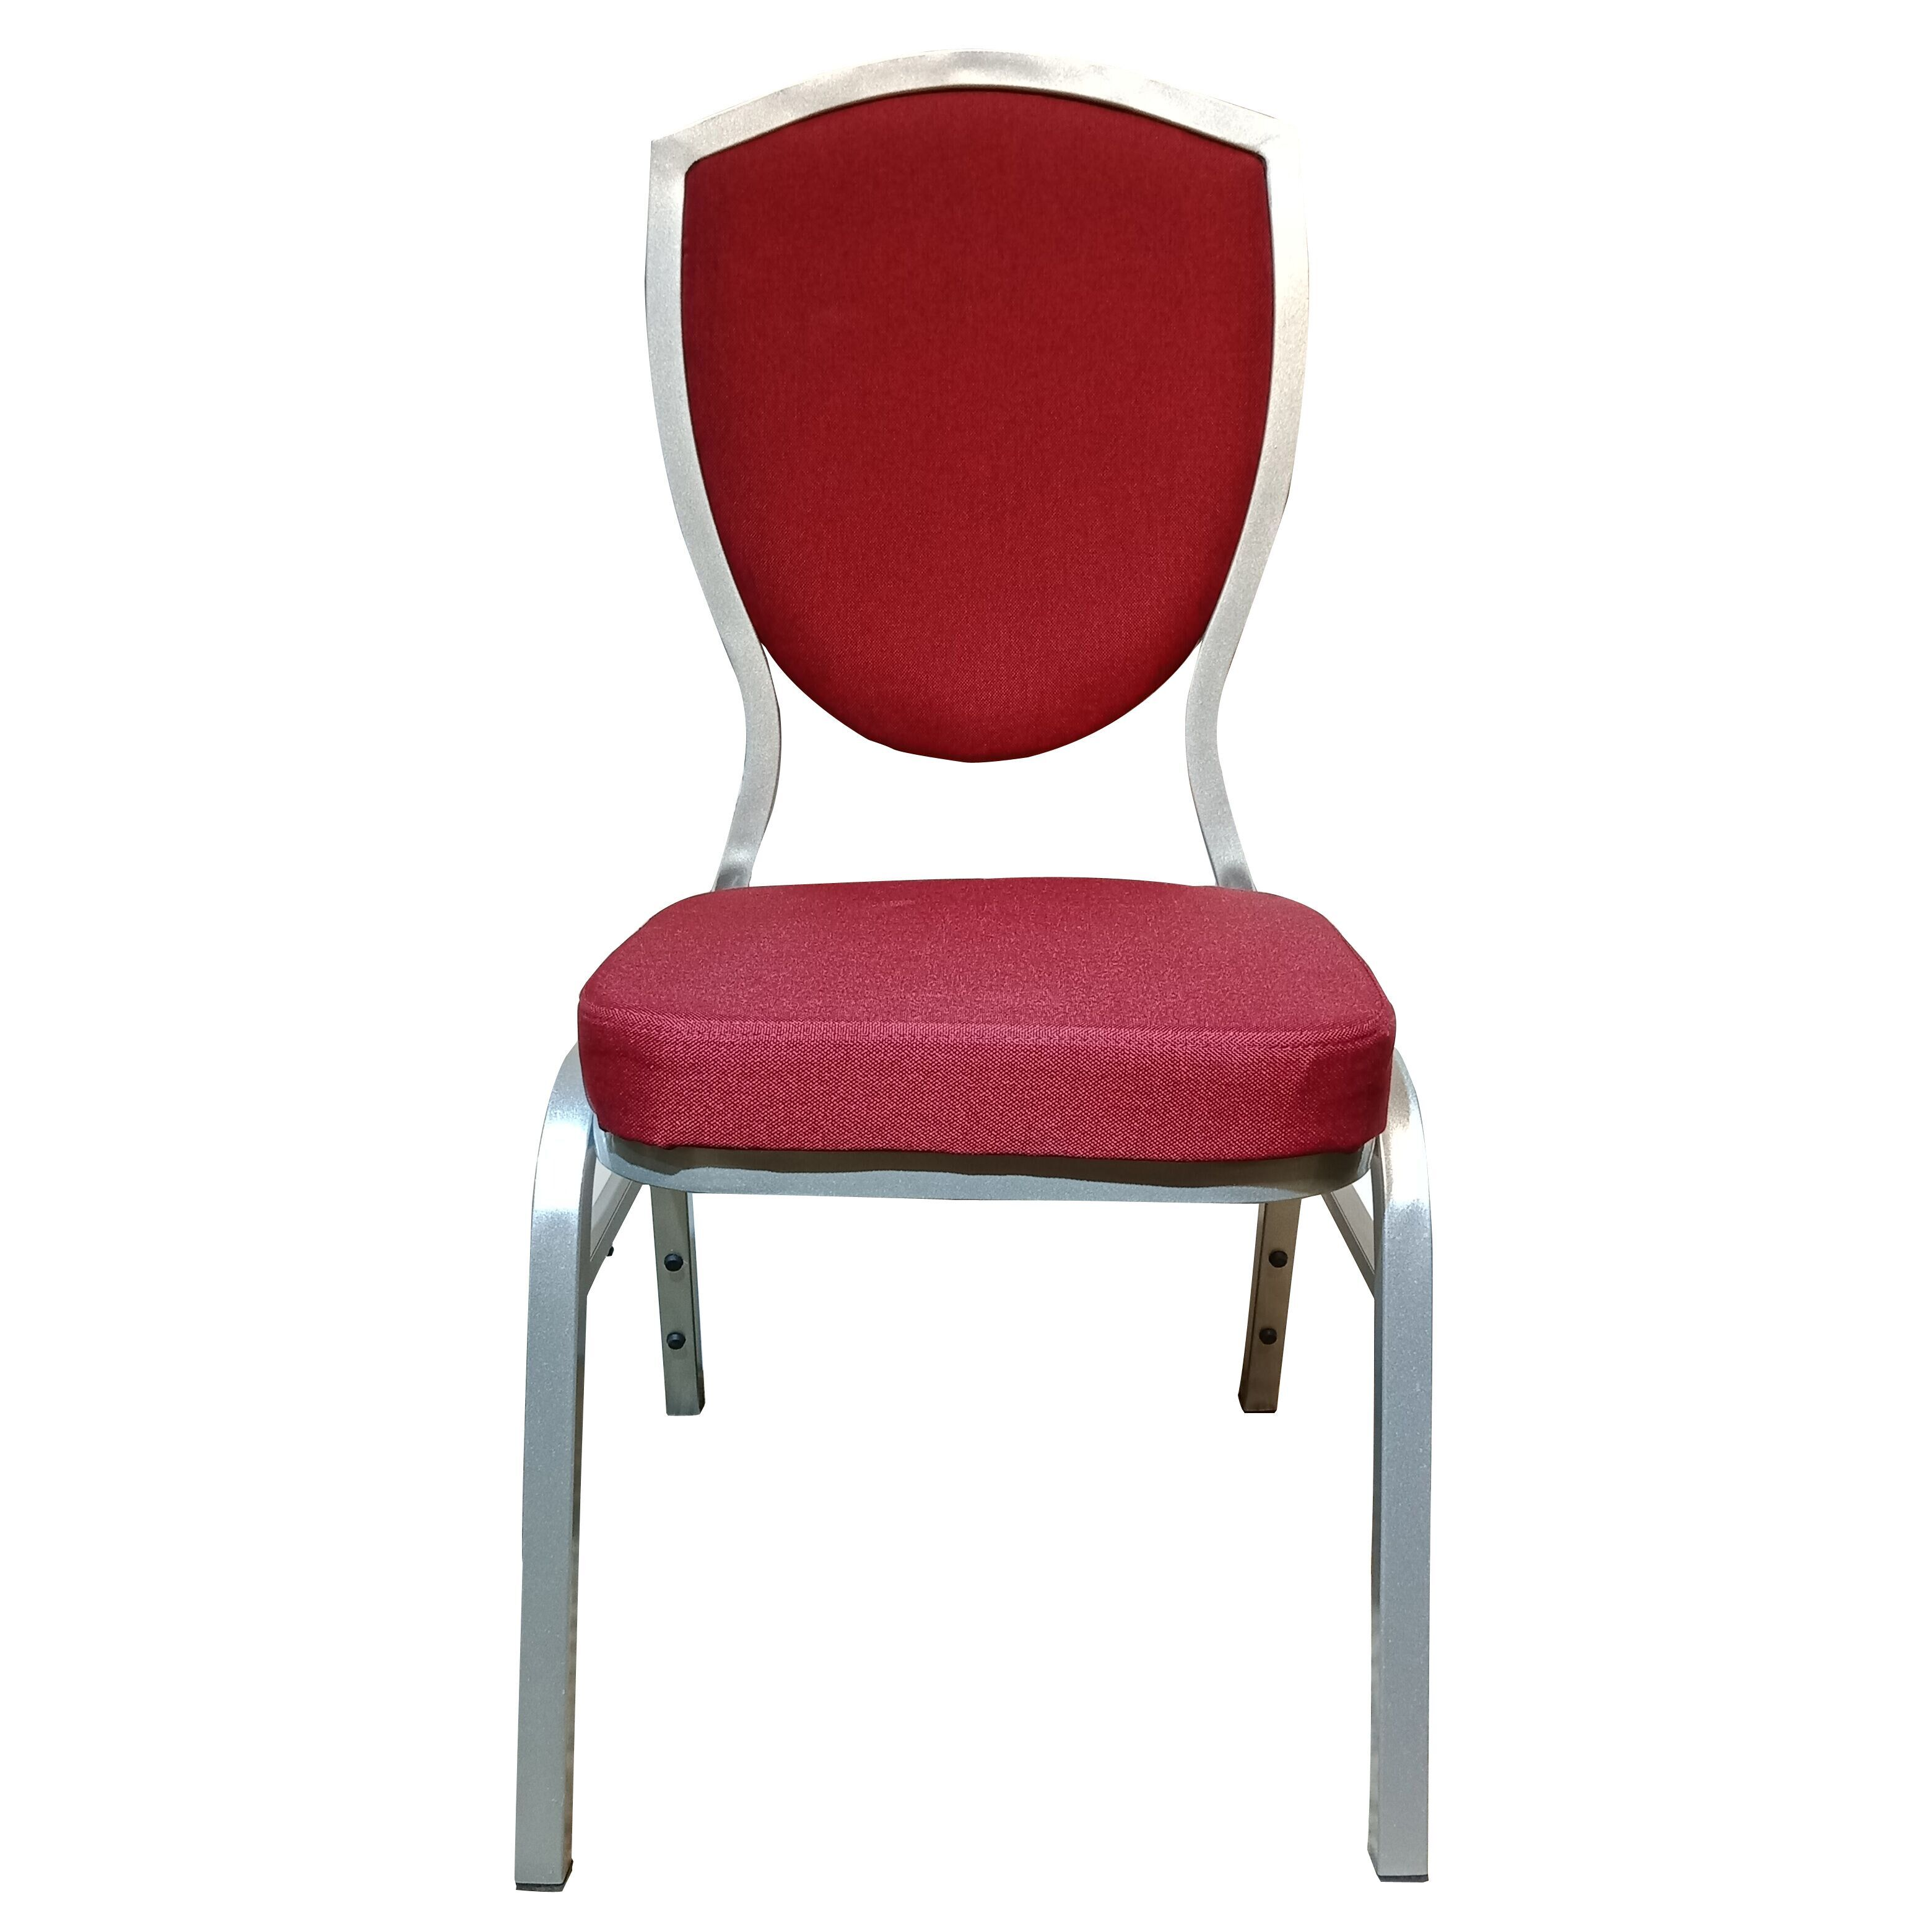 Factory For Island Church Chairs -